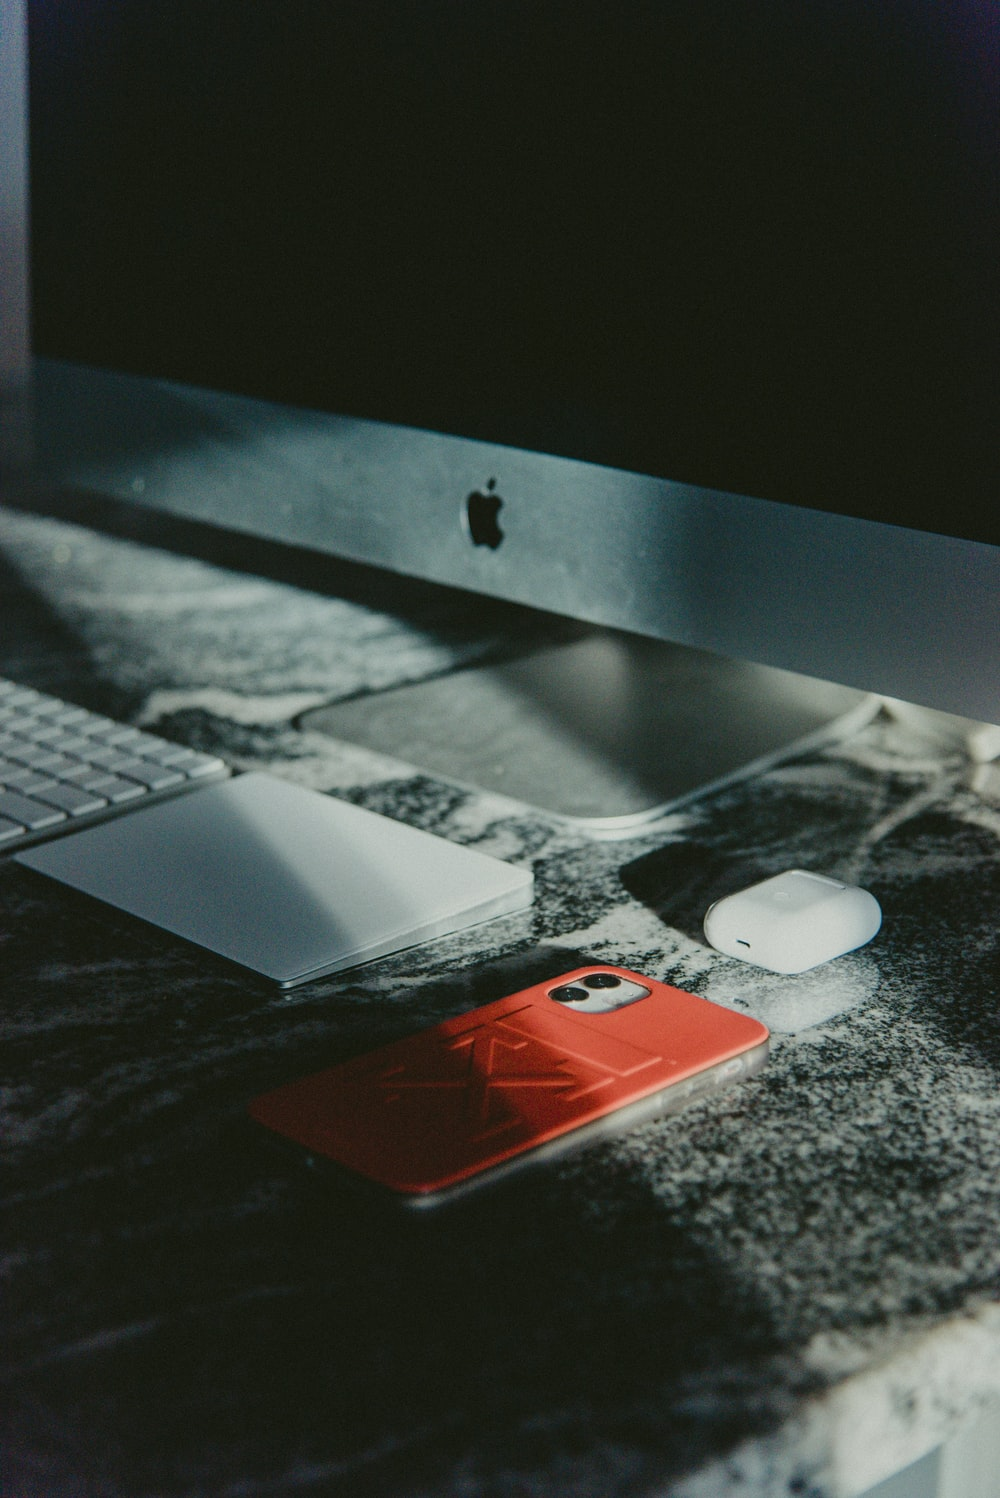 white and red iphone case on black table